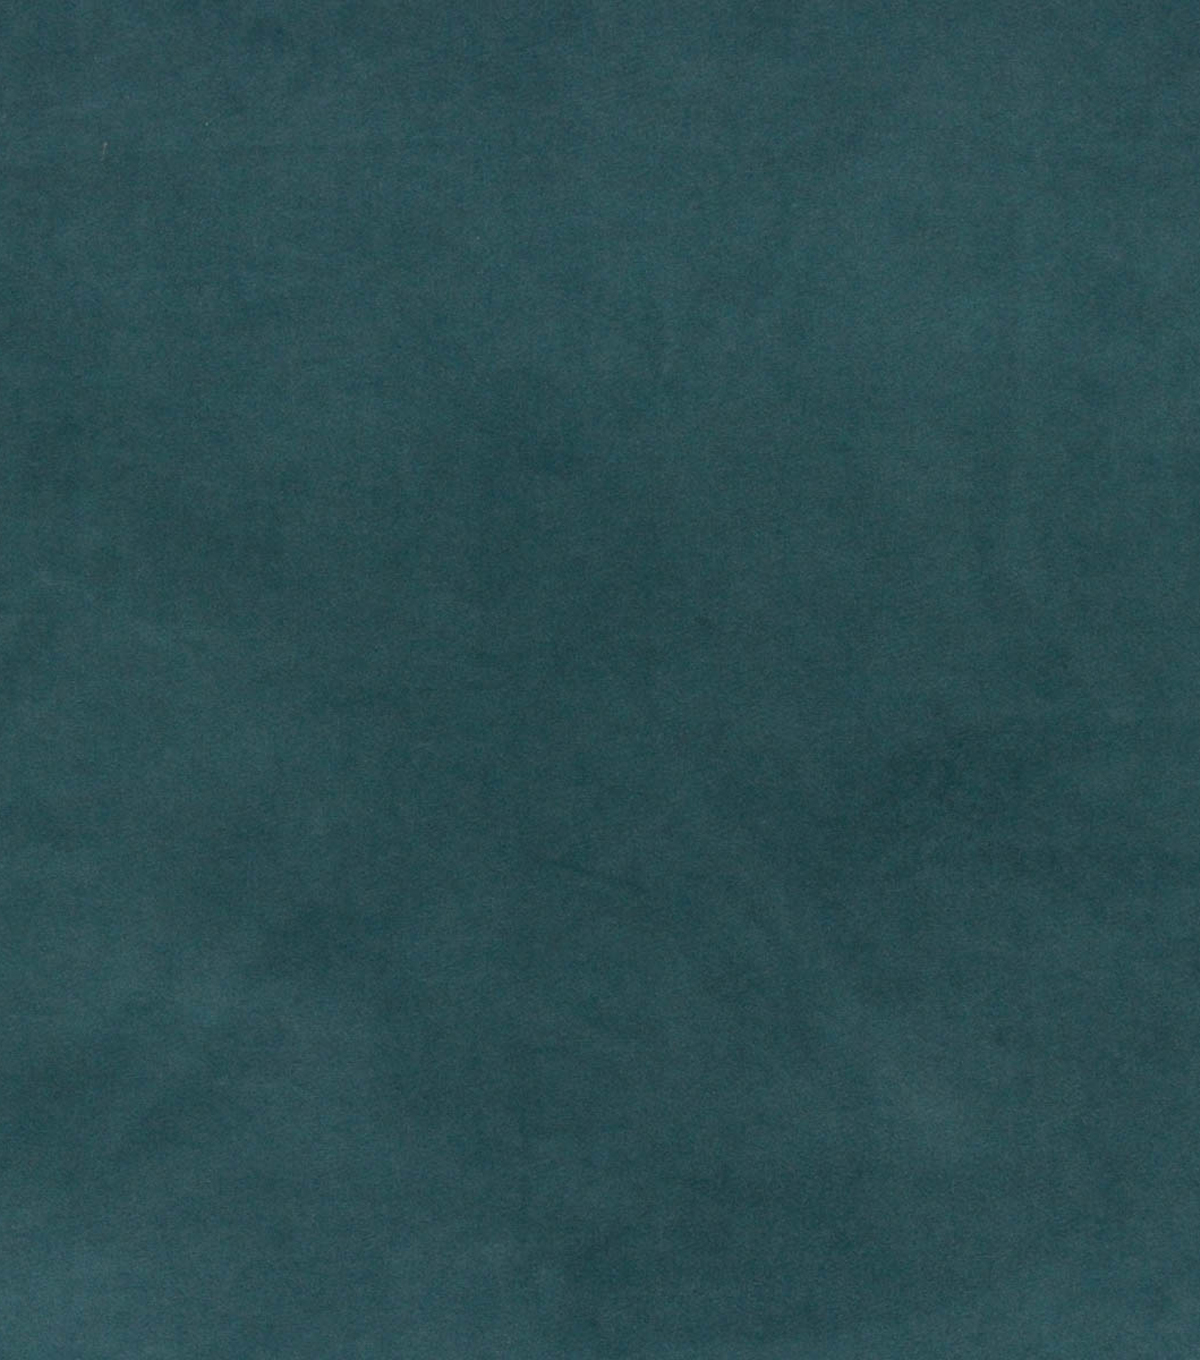 Hudson 43 Velvet Multi-Purpose Home Decor Fabric 56\u0022-Teal